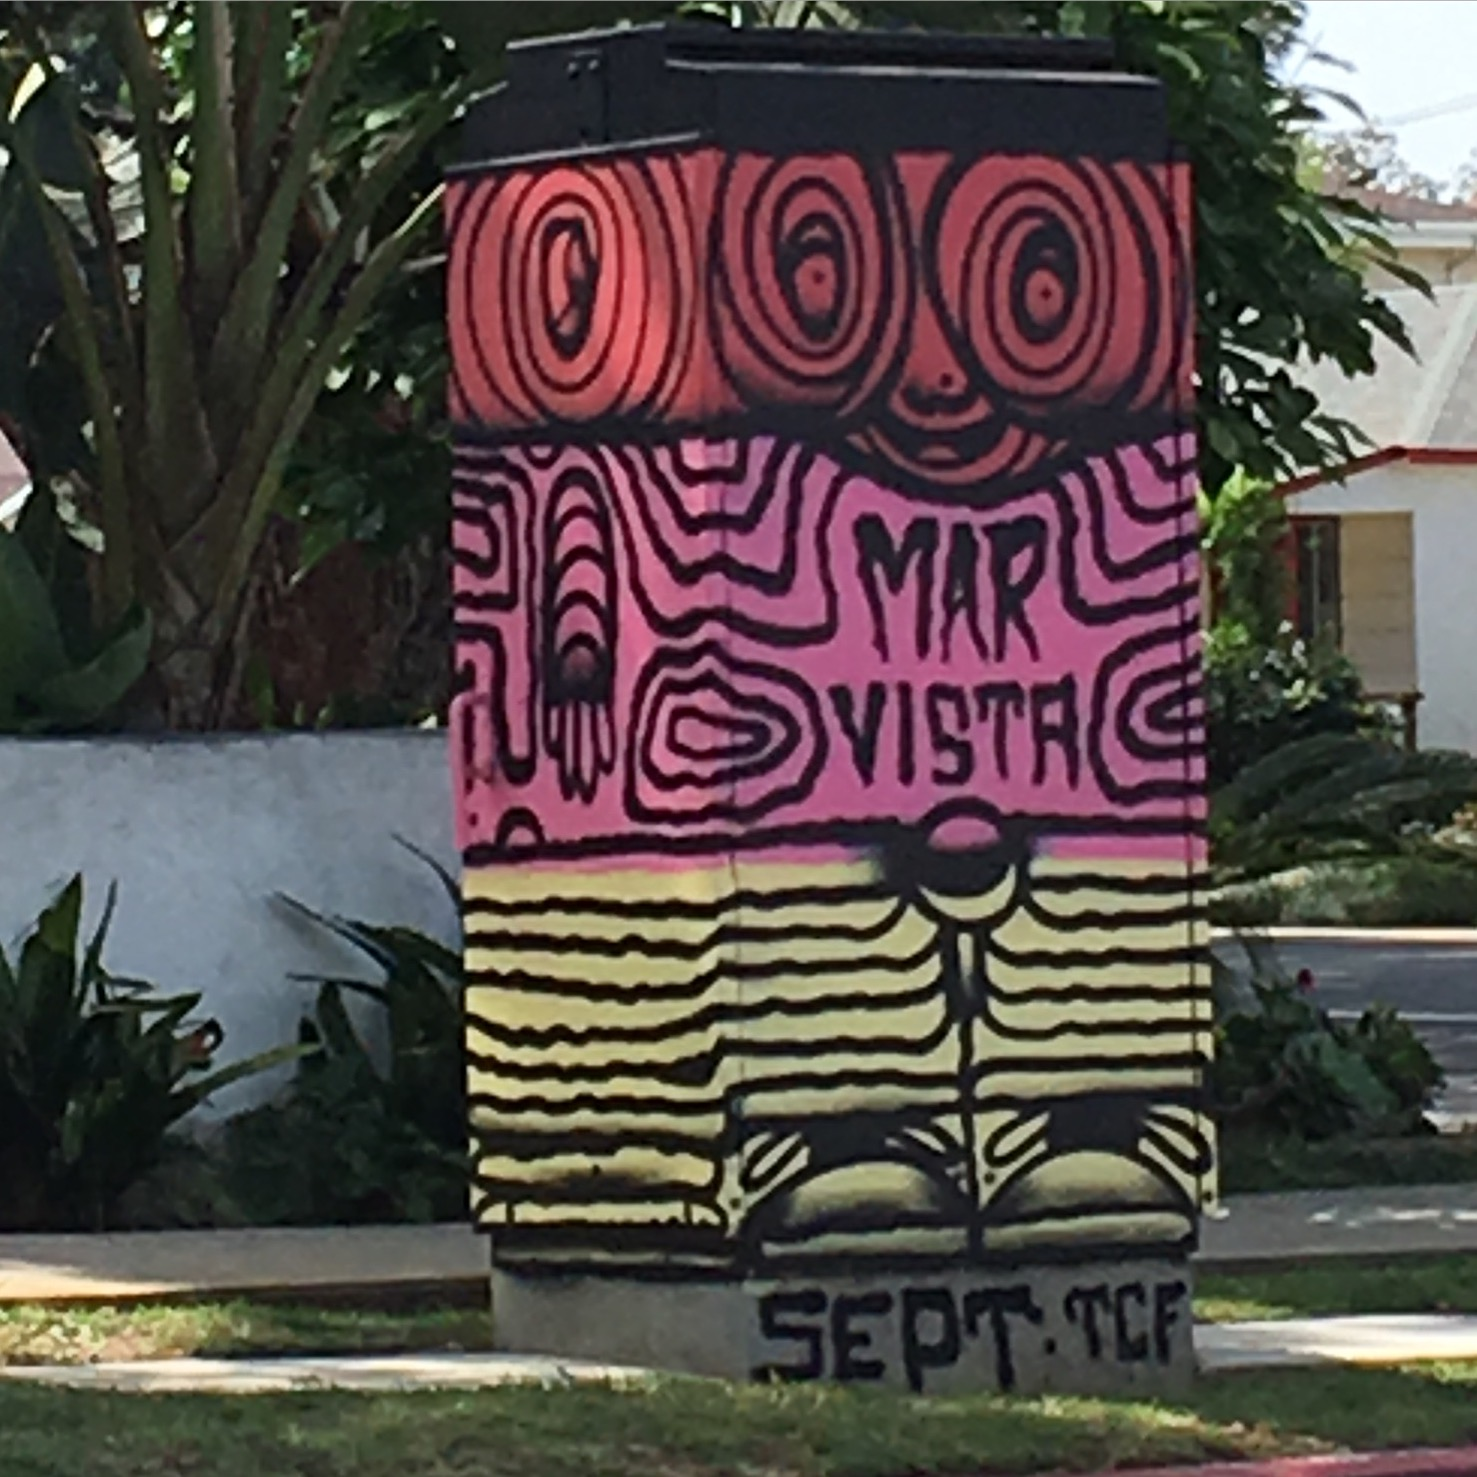 Street art in Mar Vista